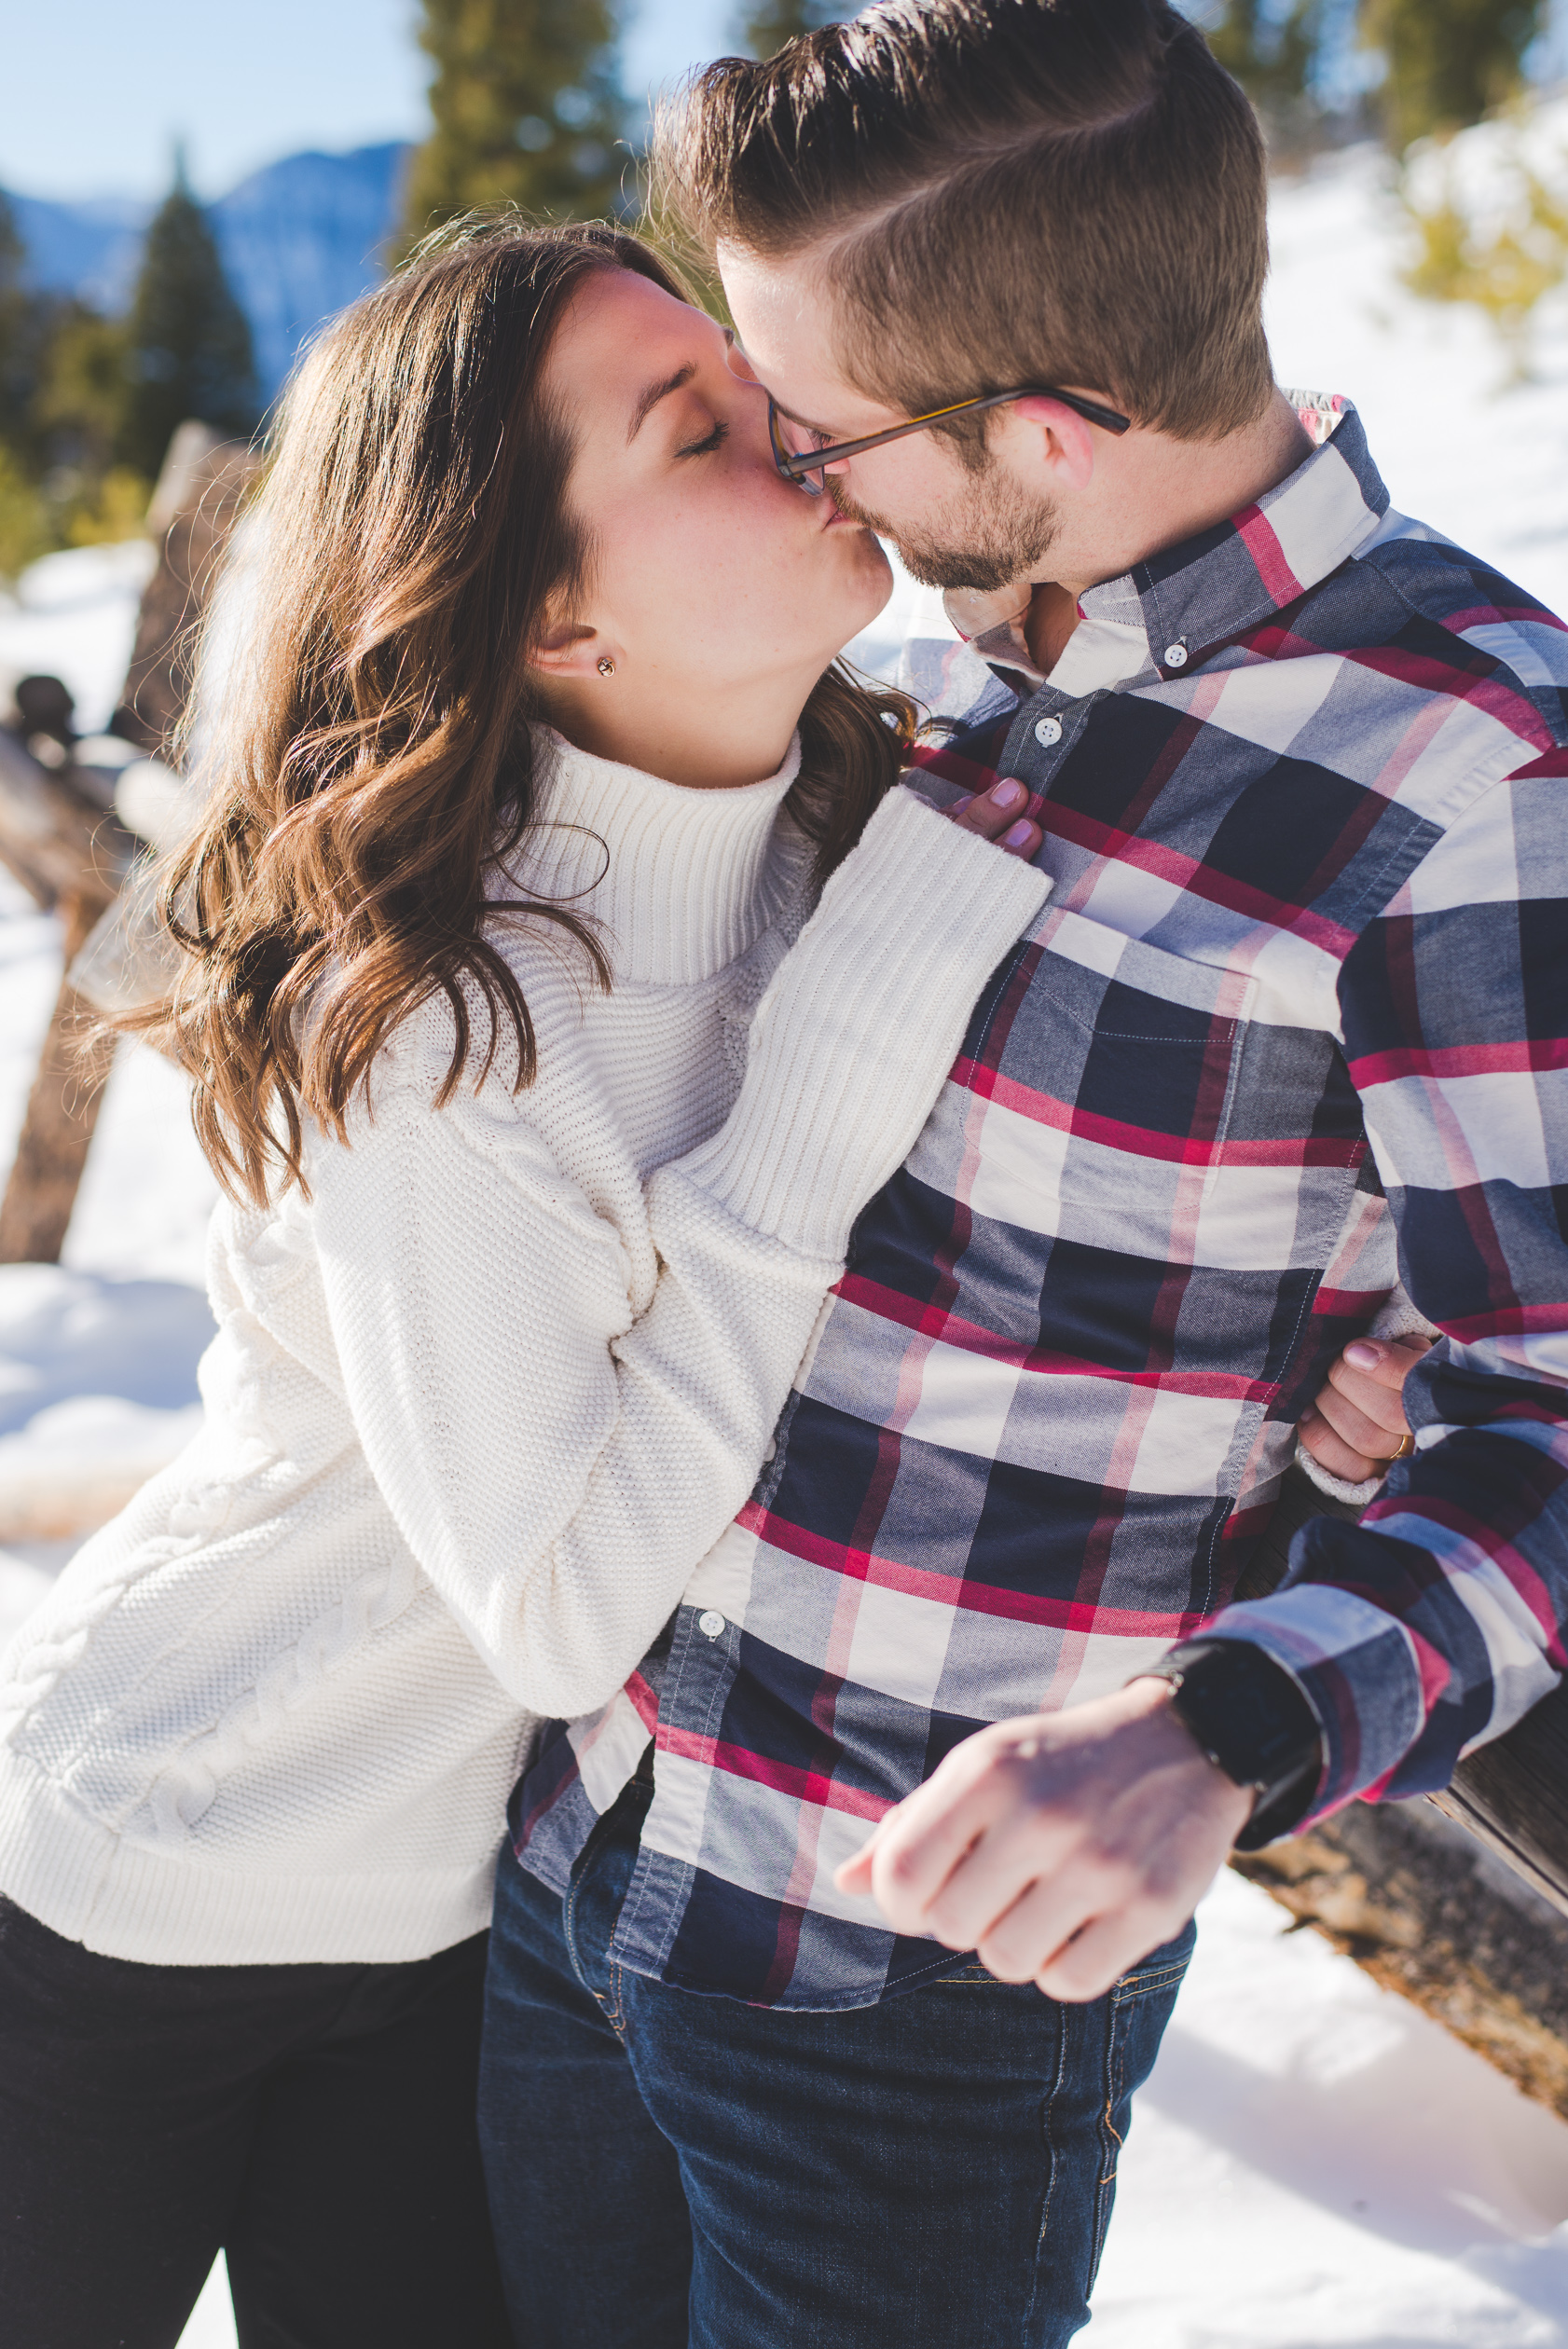 when it's chilly, snuggle up and go in for the big kiss! these two exuded LOVE during their engagement photo shoot